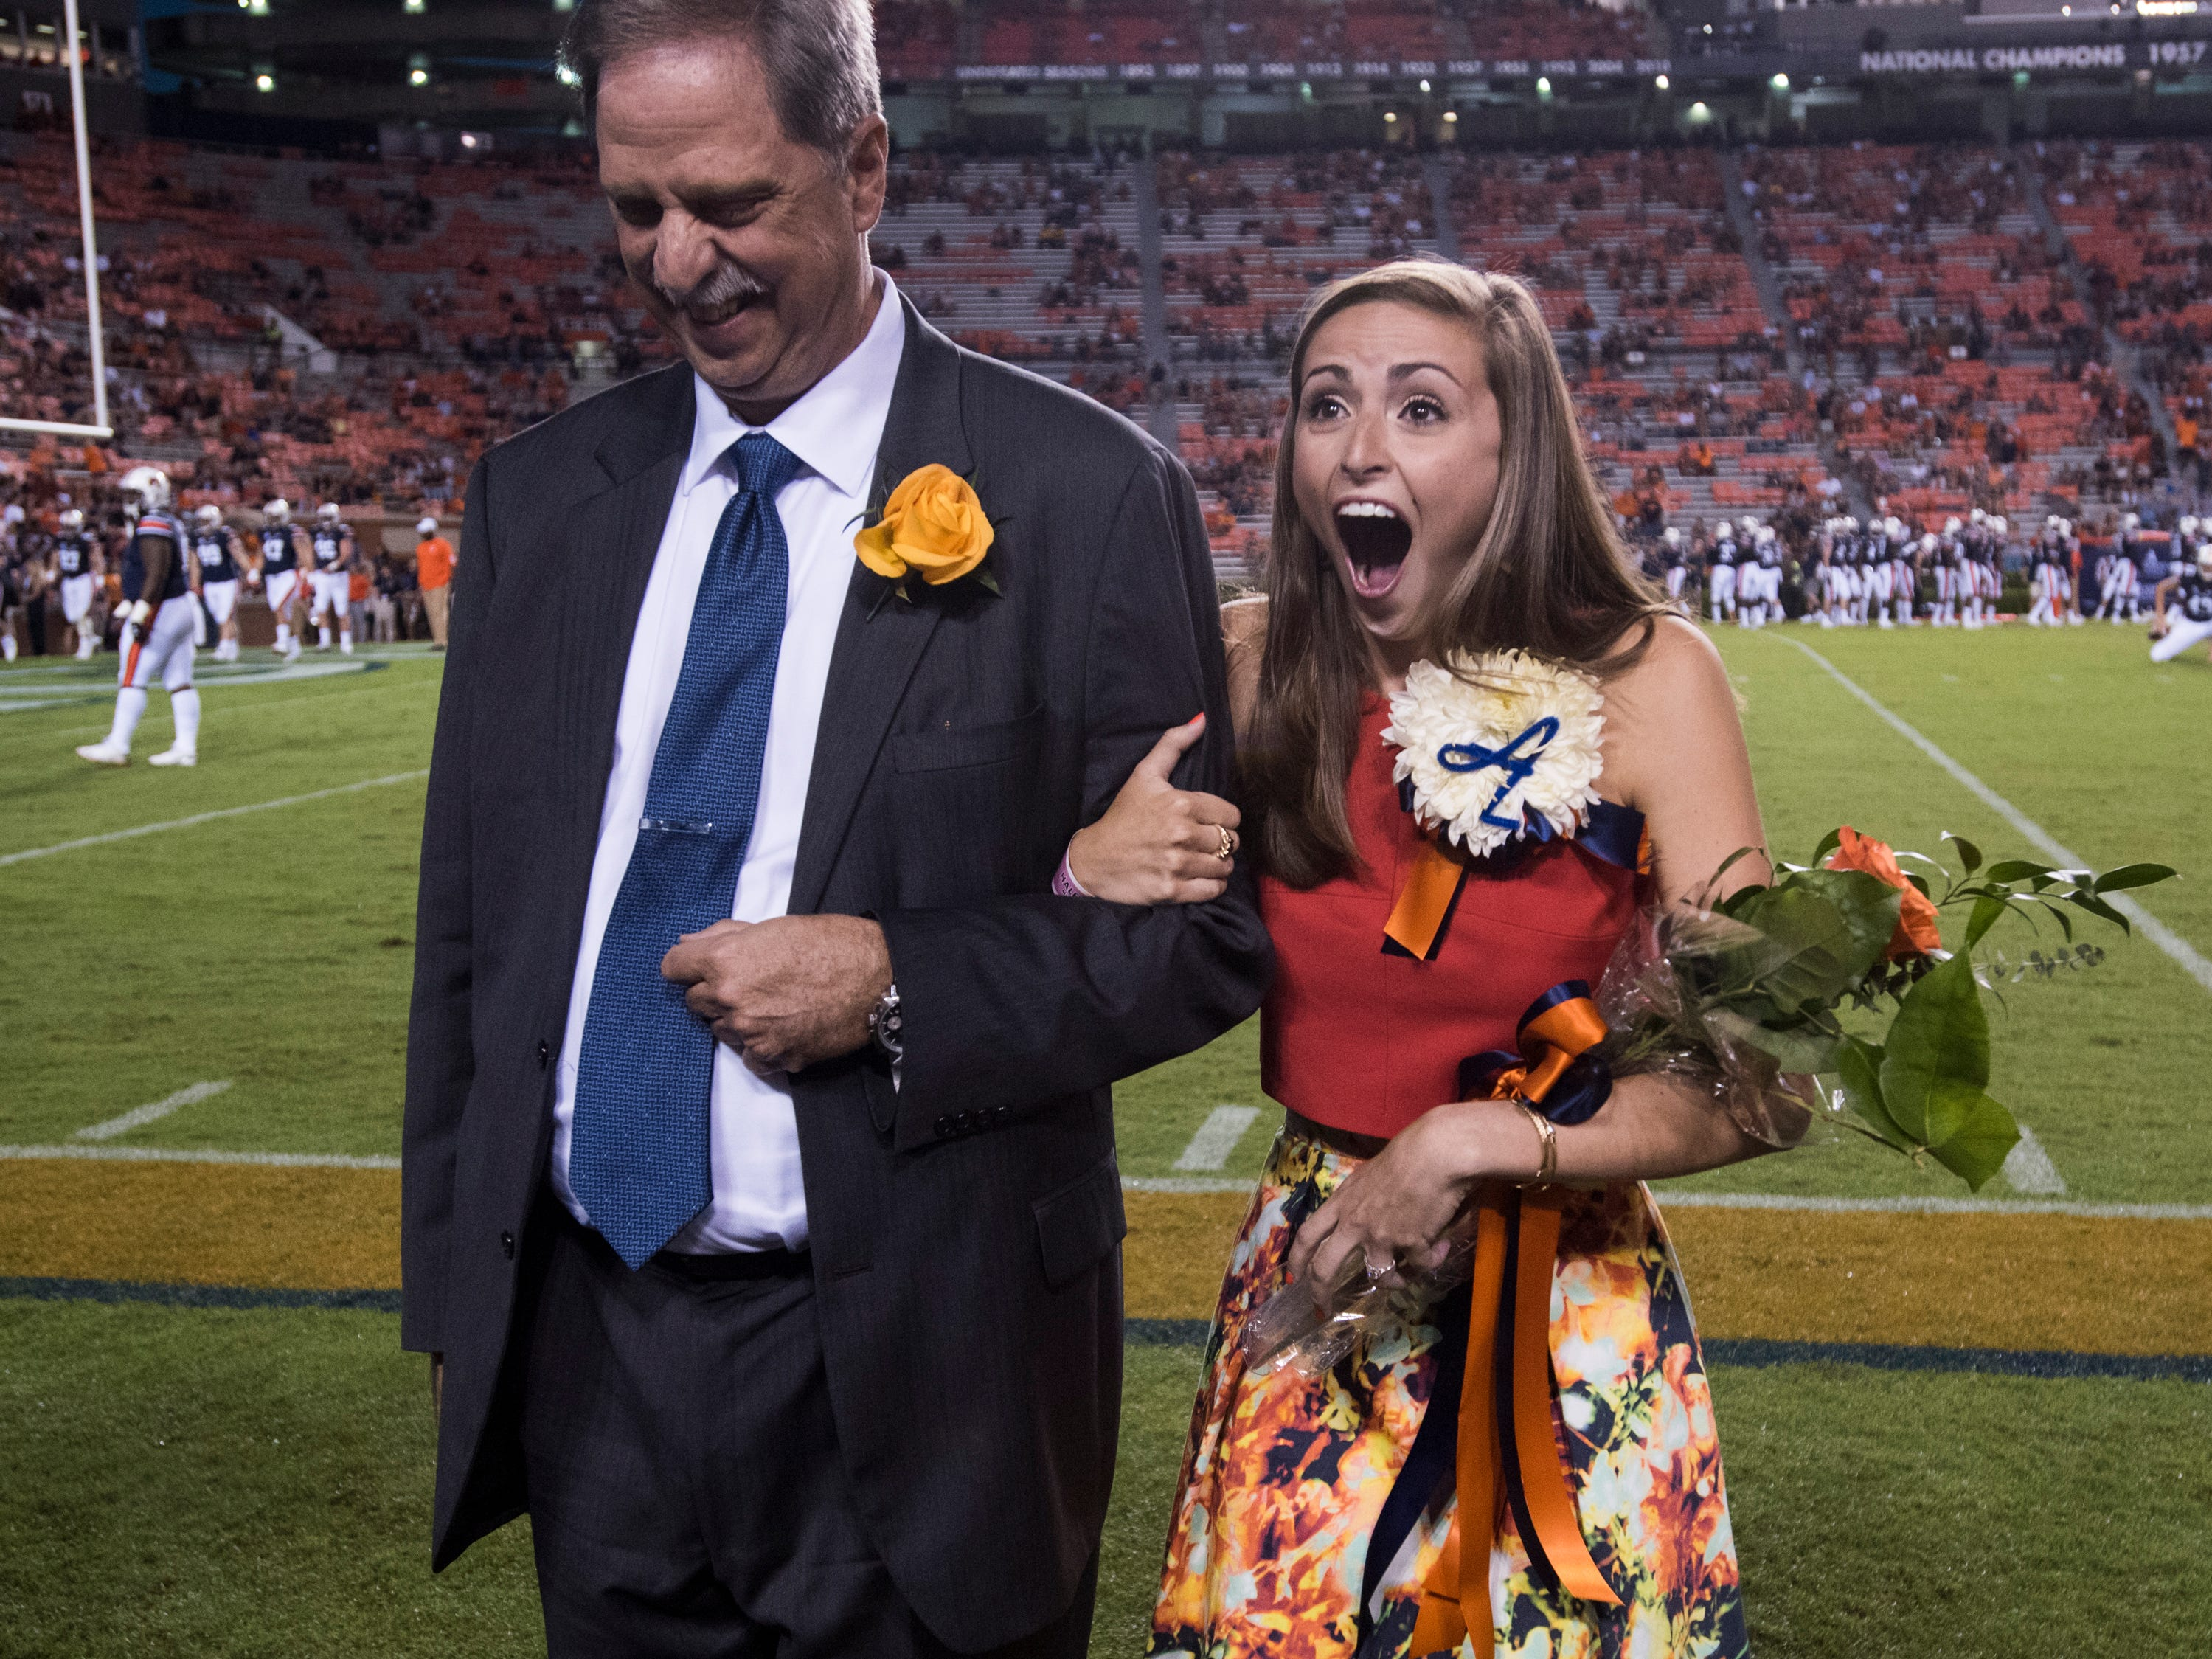 Sadie Argo, right, reacts after being announced homecoming queen at Jordan-Hare Stadium in Auburn, Ala., on Saturday, Sept. 29, 2018. Auburn defeated  Southern Miss 24-13.